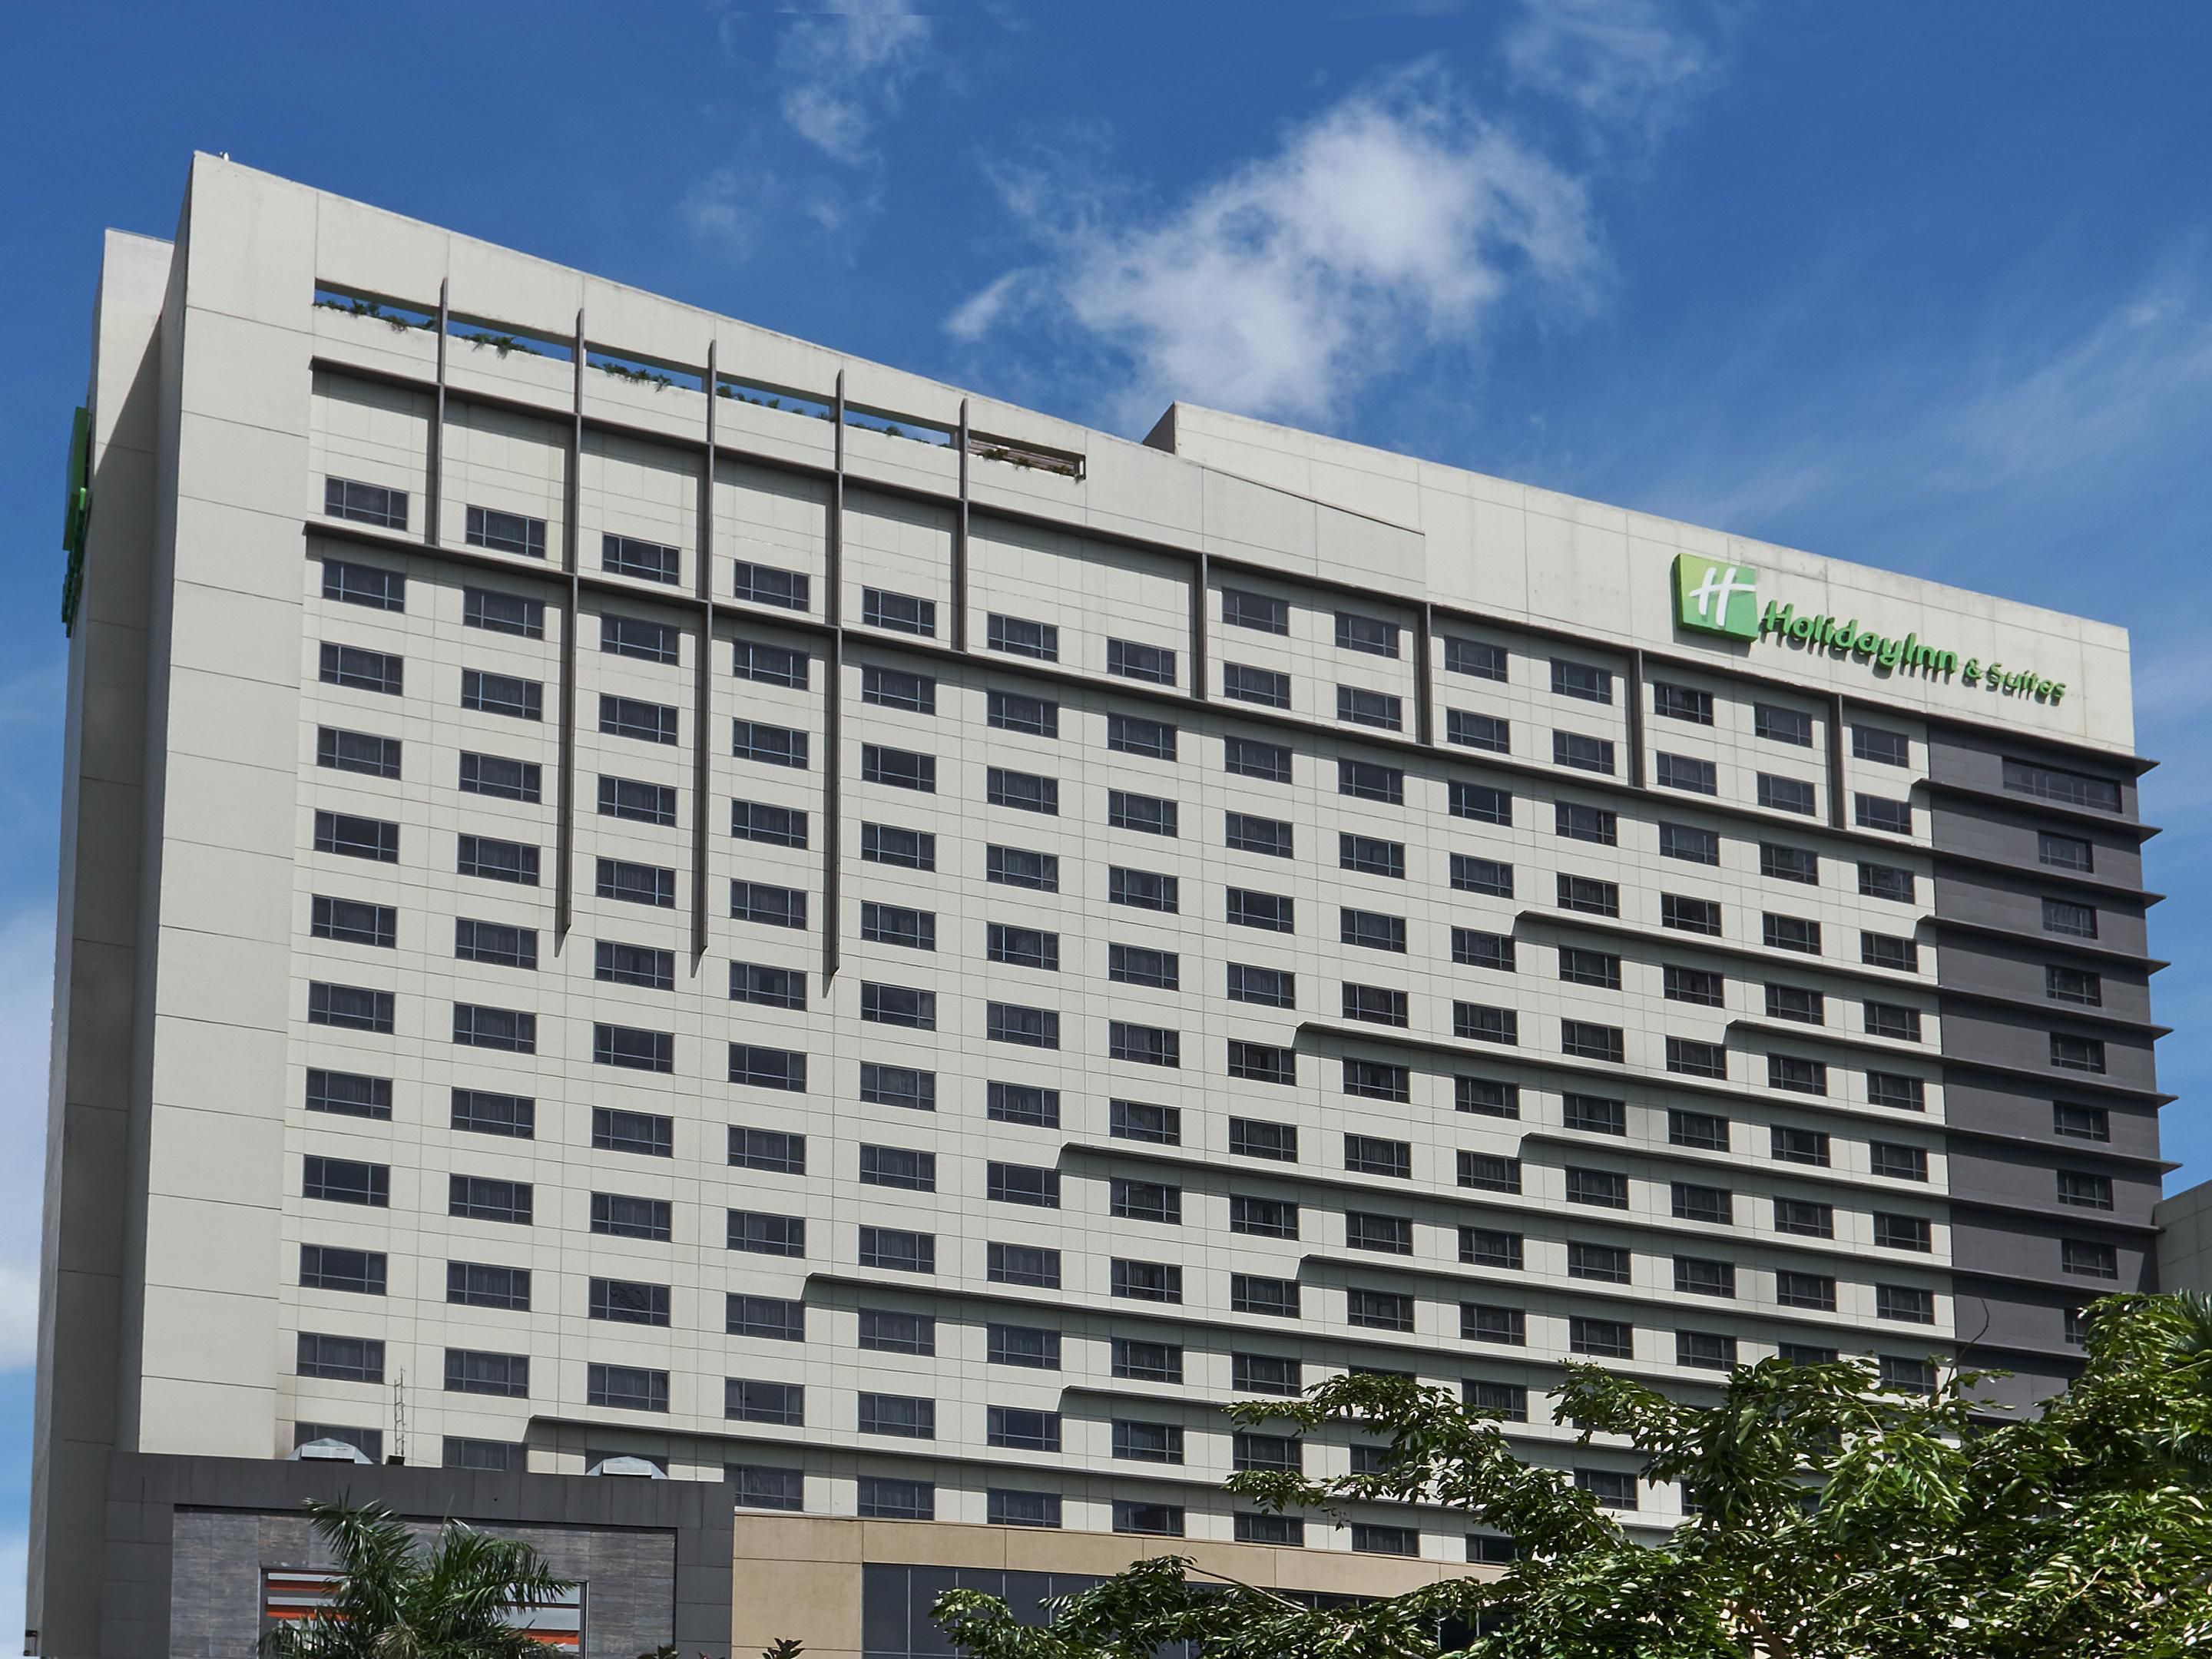 Holiday inn suites makati hotel rooms near manila airport solutioingenieria Images